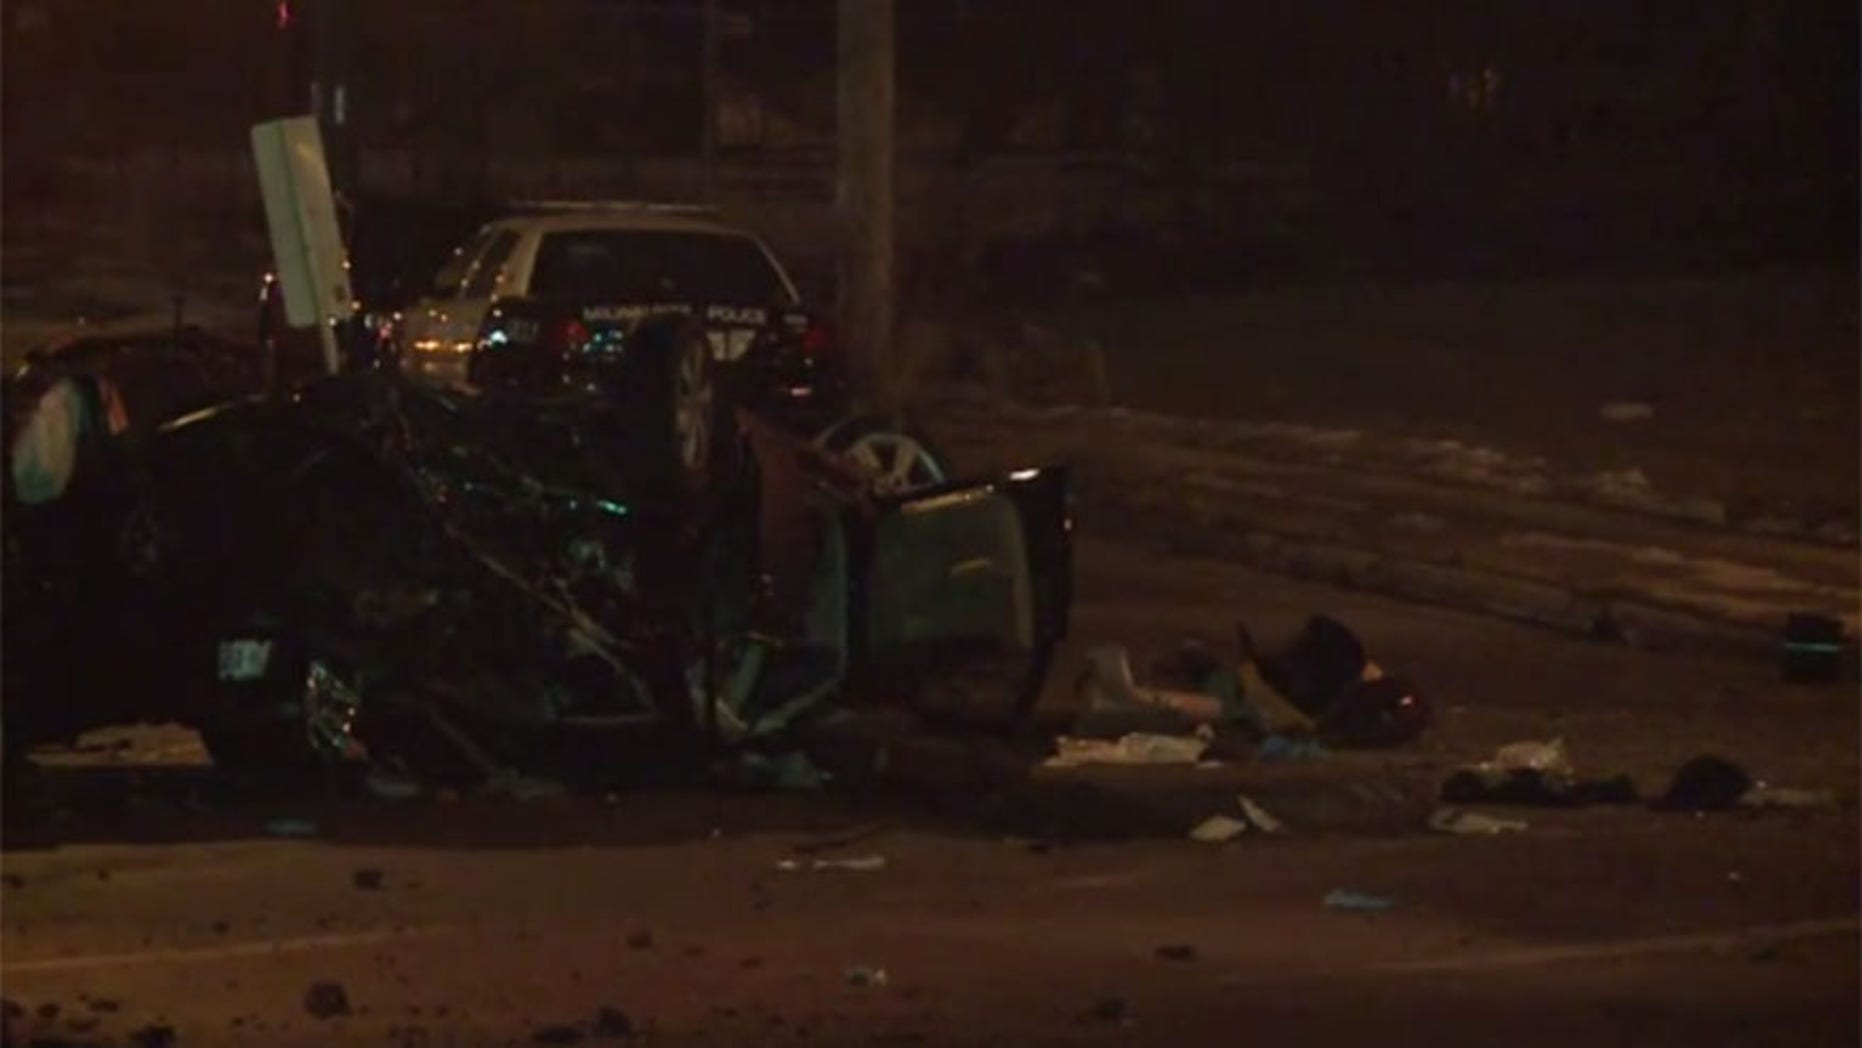 The driver lost control of the car and ran into a utility pole and two other vehicles, one with a mother and her two sons inside who were not injured.